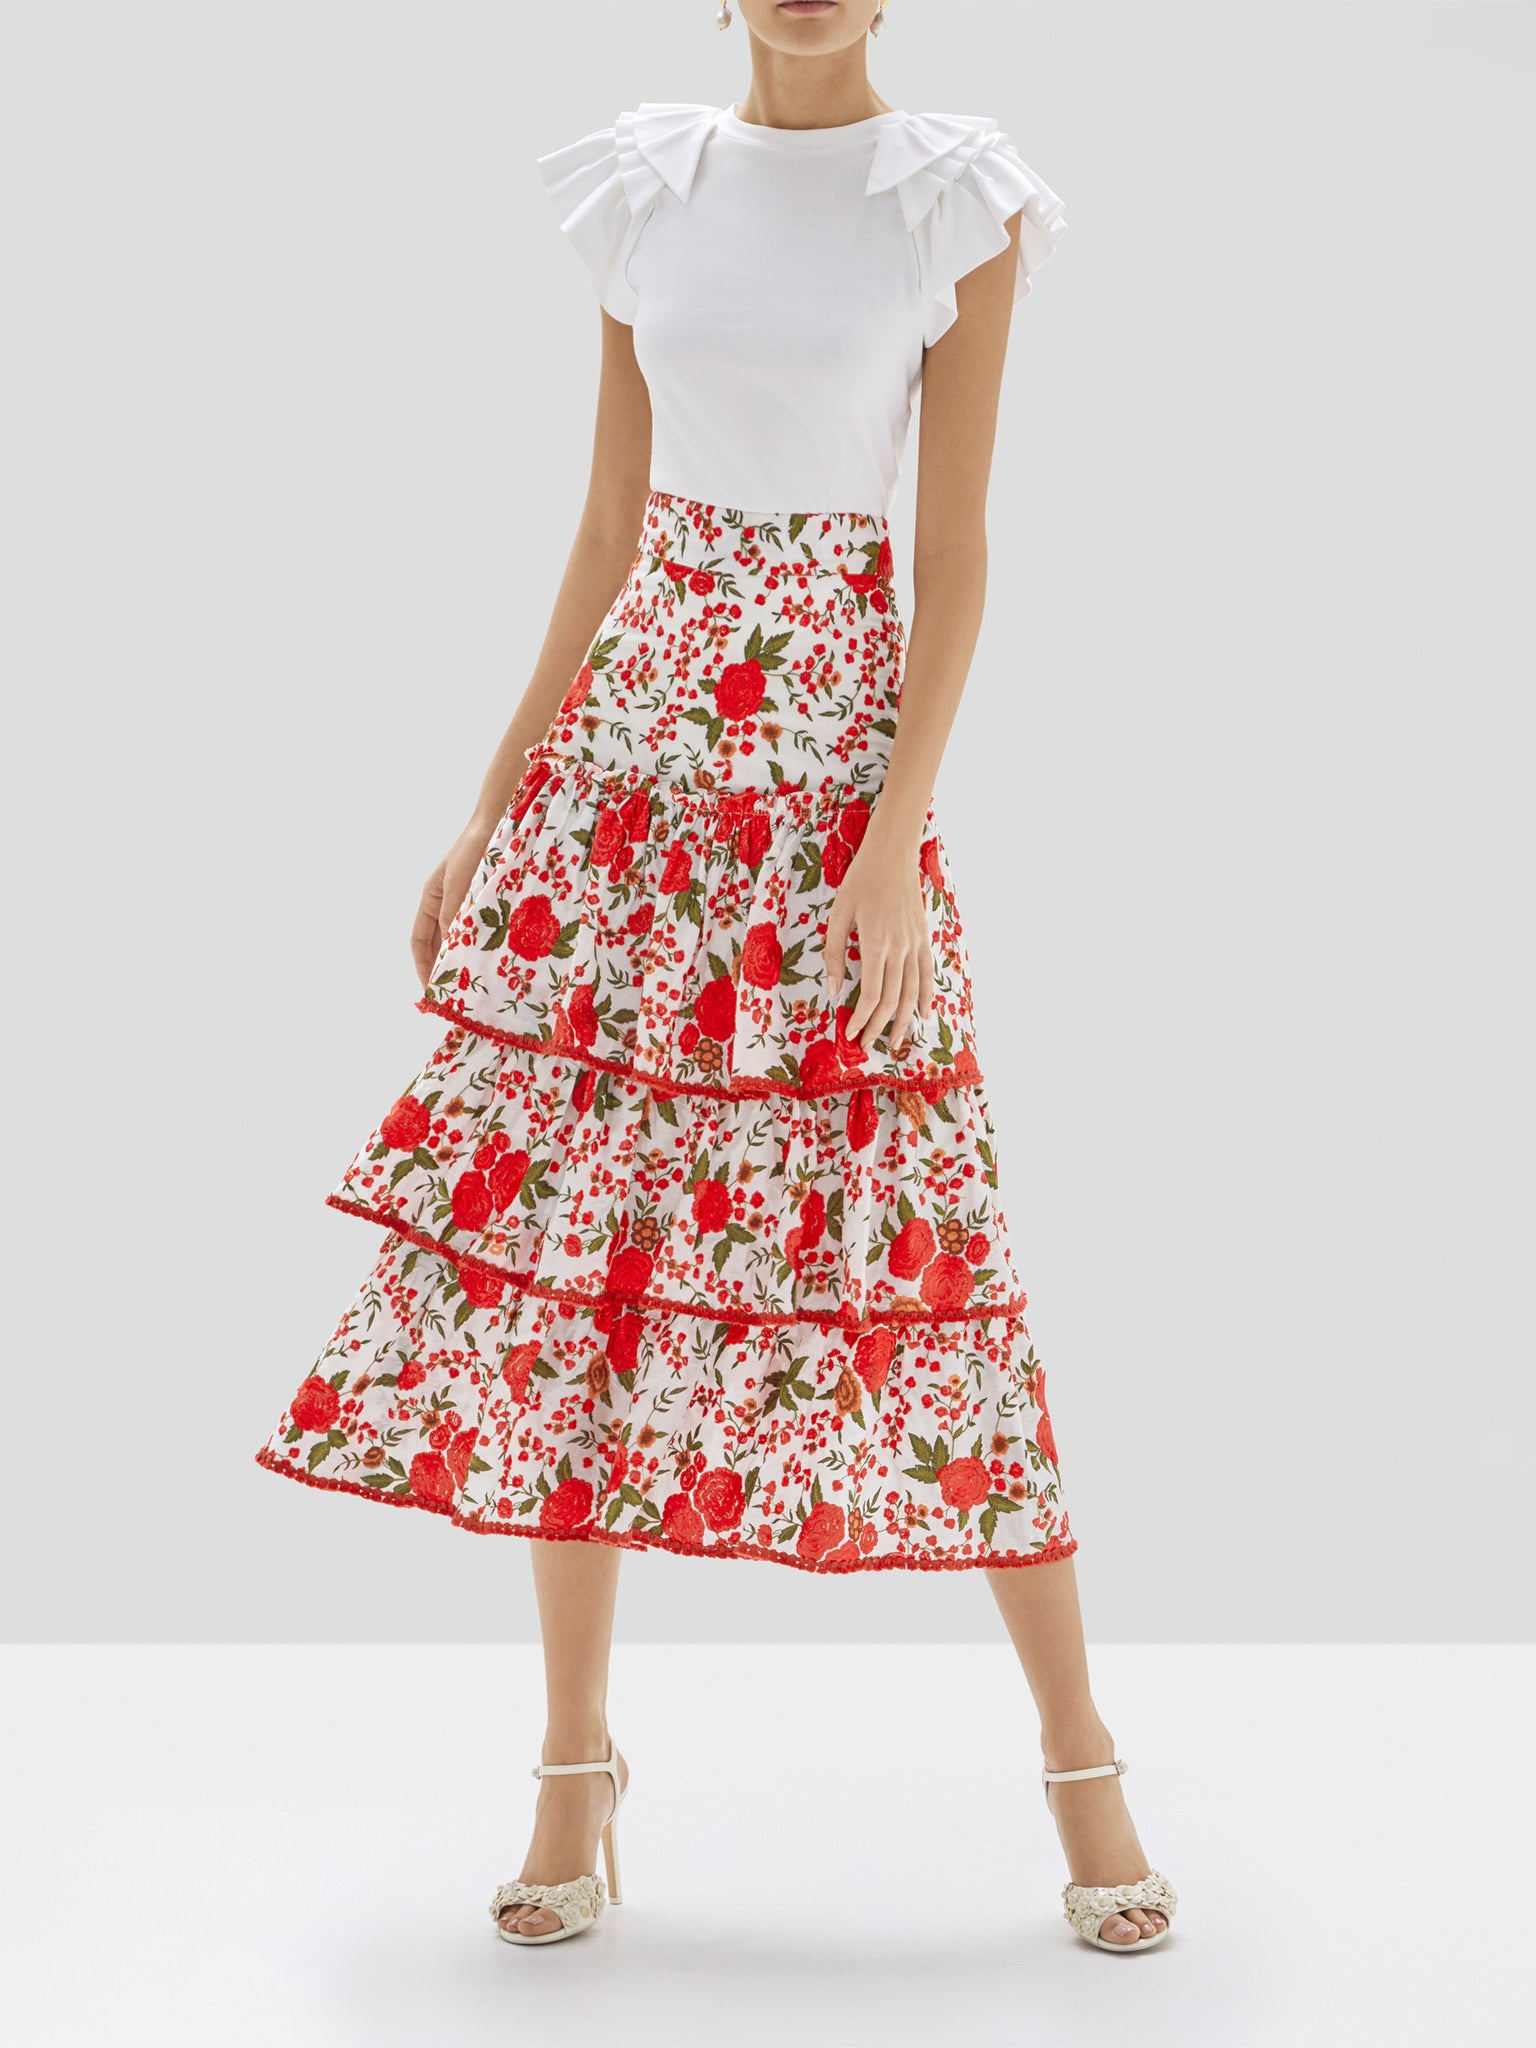 Alexis Cassis Top in White and Doretta Skirt in Rose Embroidery from Pre Spring 2020 Collection